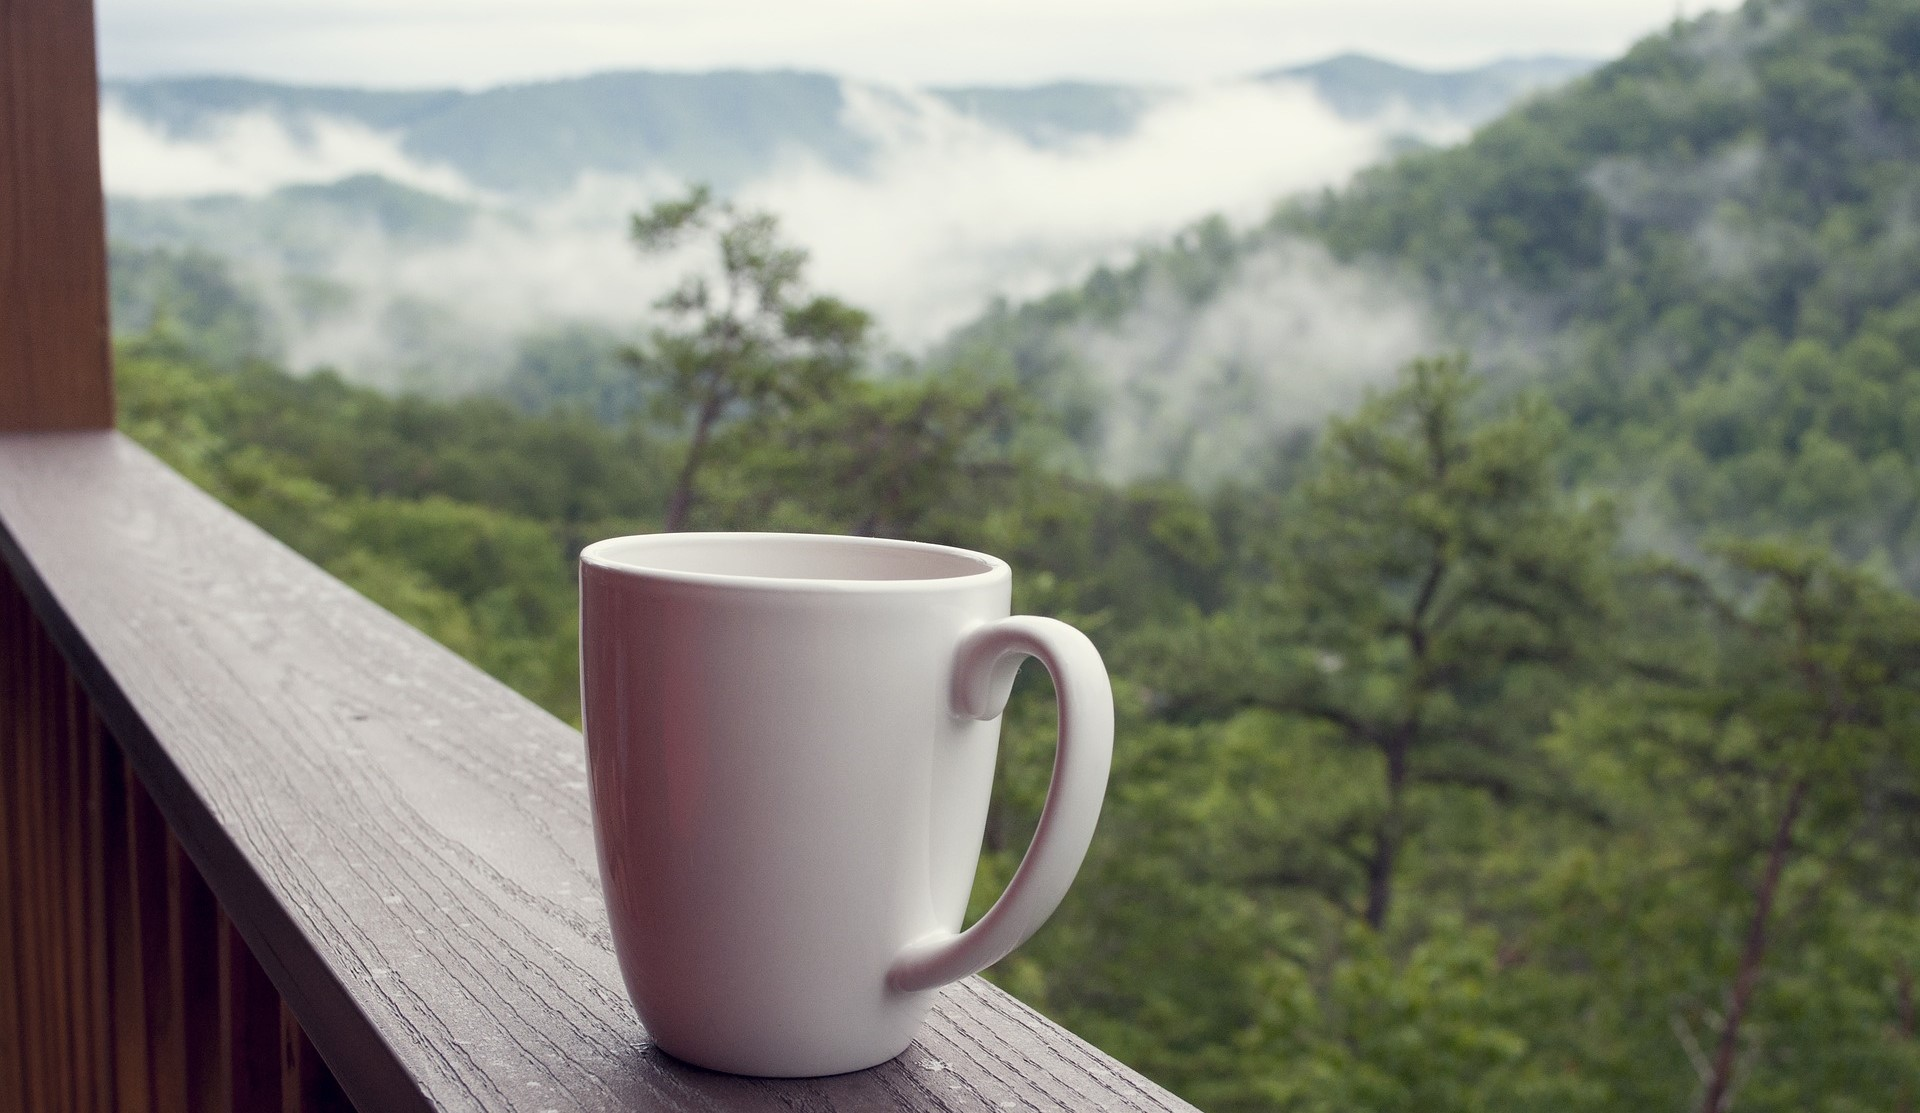 A cup of tea  and somky mountains